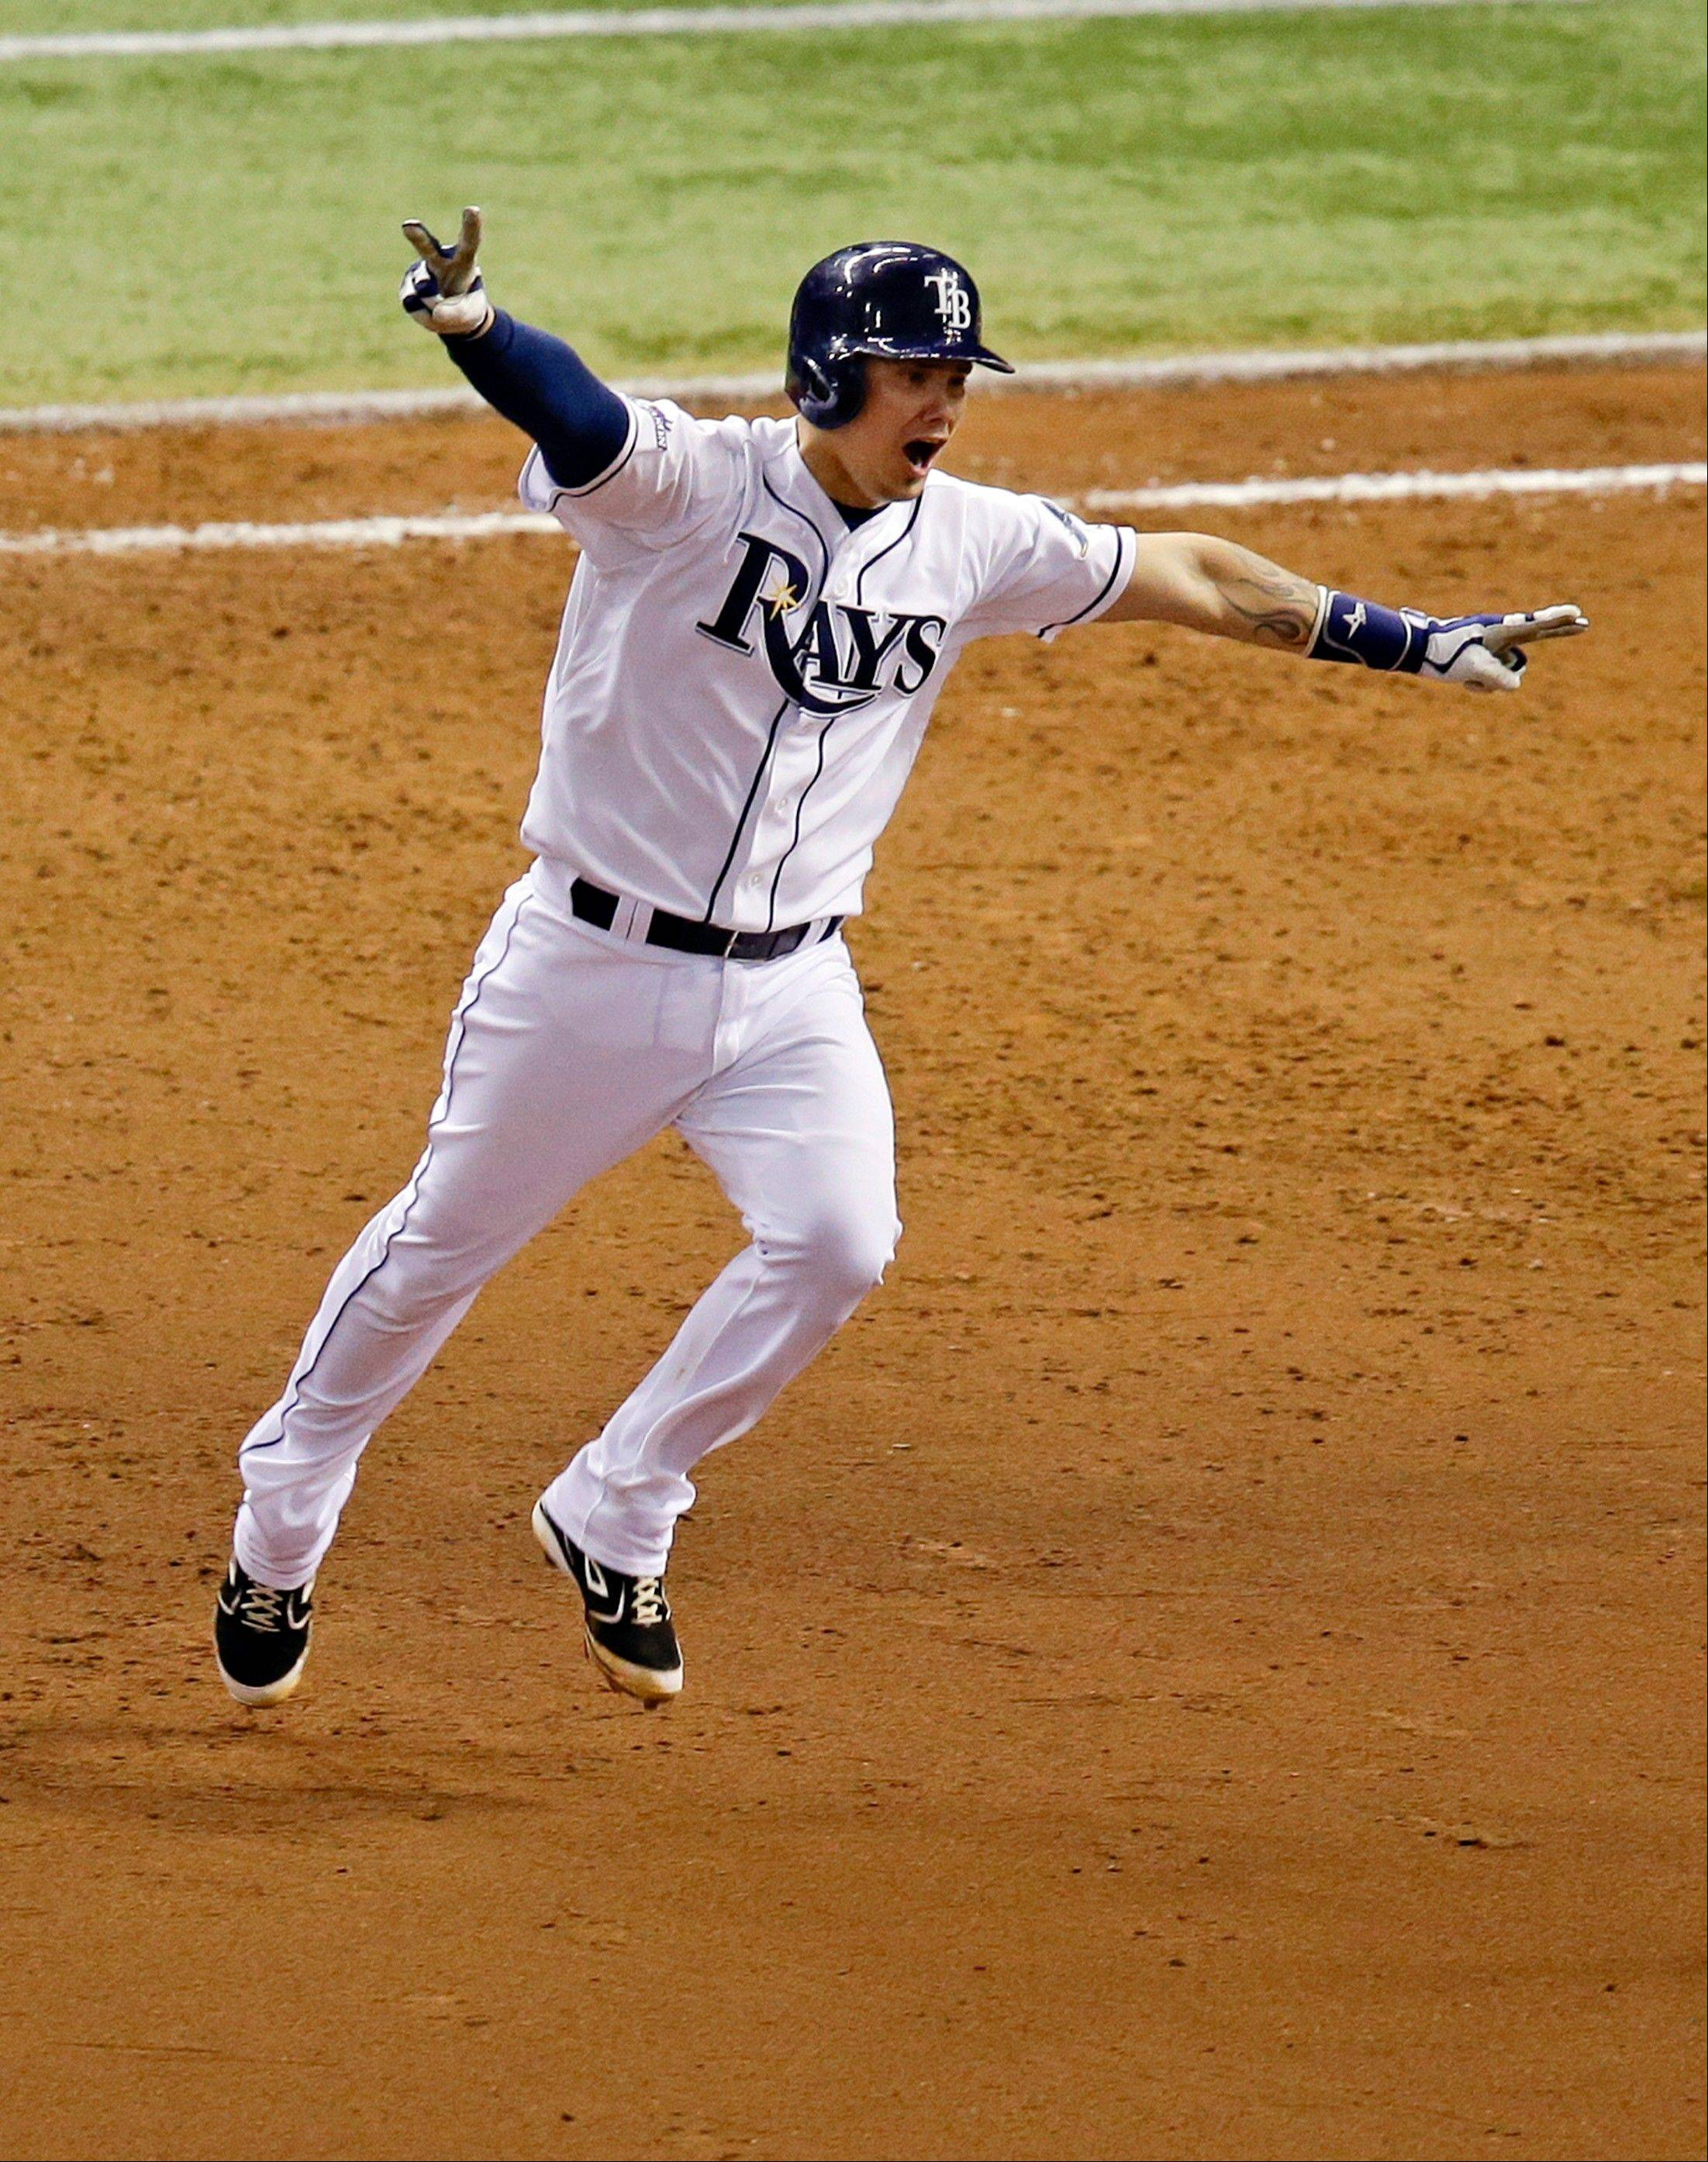 The White Sox reportedly are involved in trade talks with the Tampa Bay Rays about bringing catcher Jose Lobaton to the South Side. Here, Lobaton celebrates a ninth-inning home run against the Red Sox to win Game 3 of an American League division series in October.